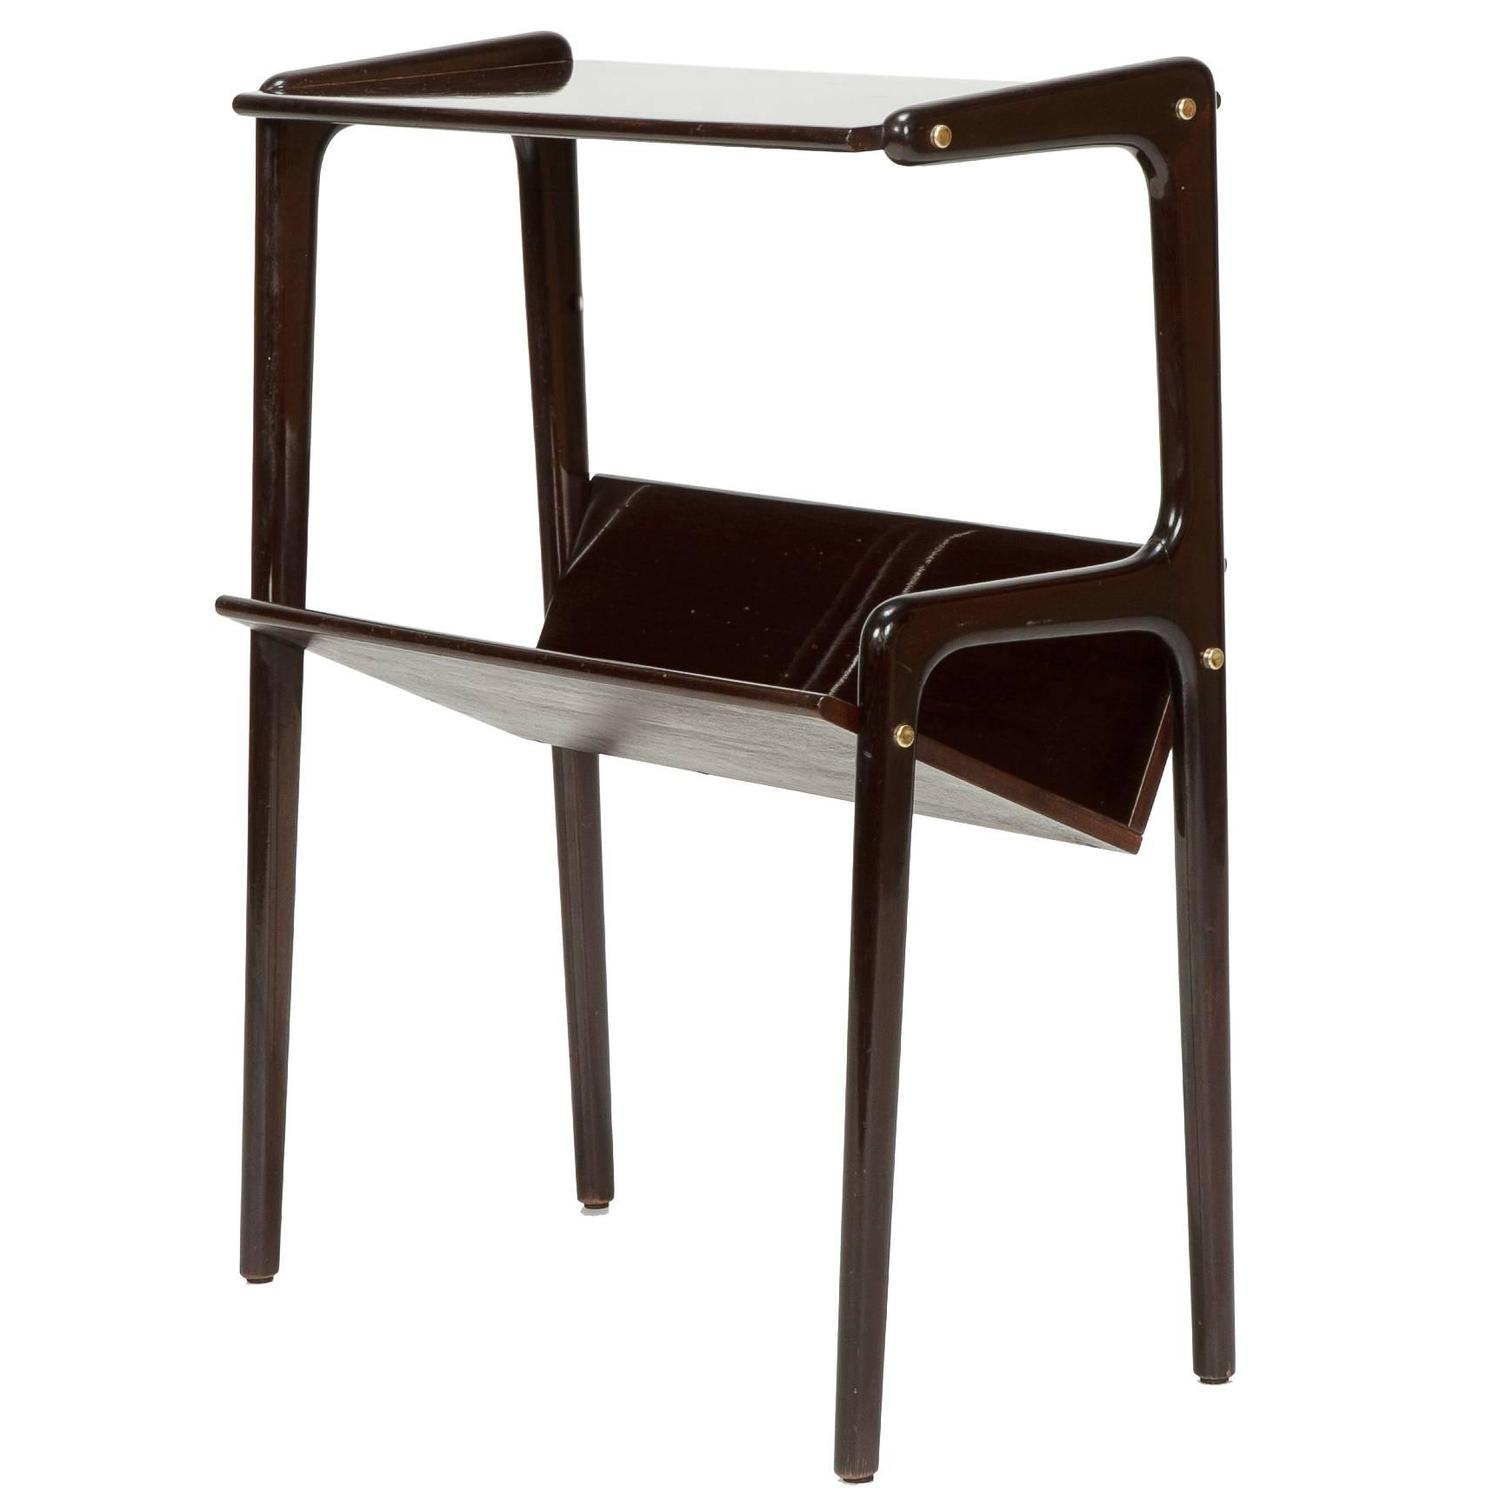 Wonderful image of Italian Bed Side Table Magazine Rack Mahogany Attributed to Ico Parisi  with #2F1E18 color and 1500x1500 pixels